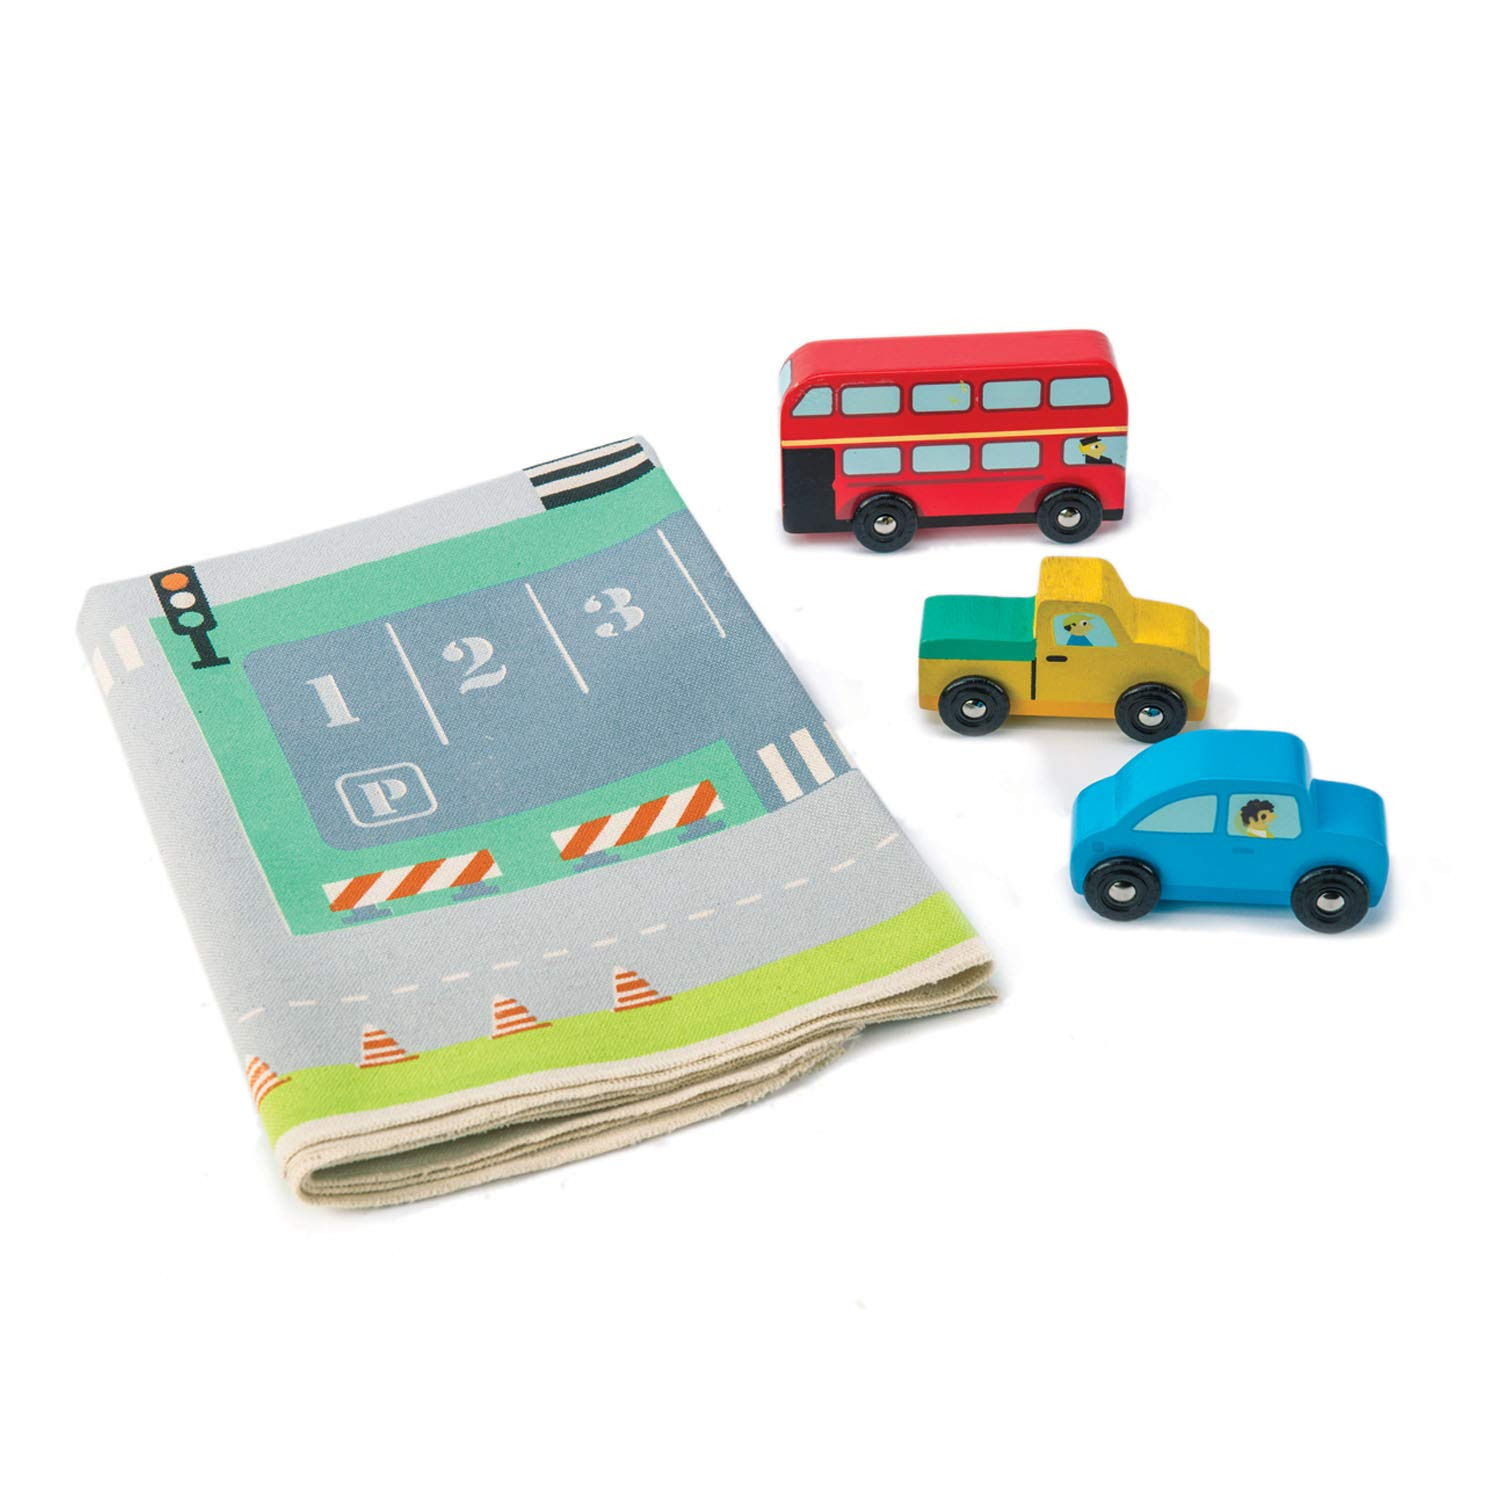 Red London Bus. Baby Nursery /& Playroom Crafts Pick Up Truck Printed Road Canvas Playmat Drive-Through on Soft Town Playmat